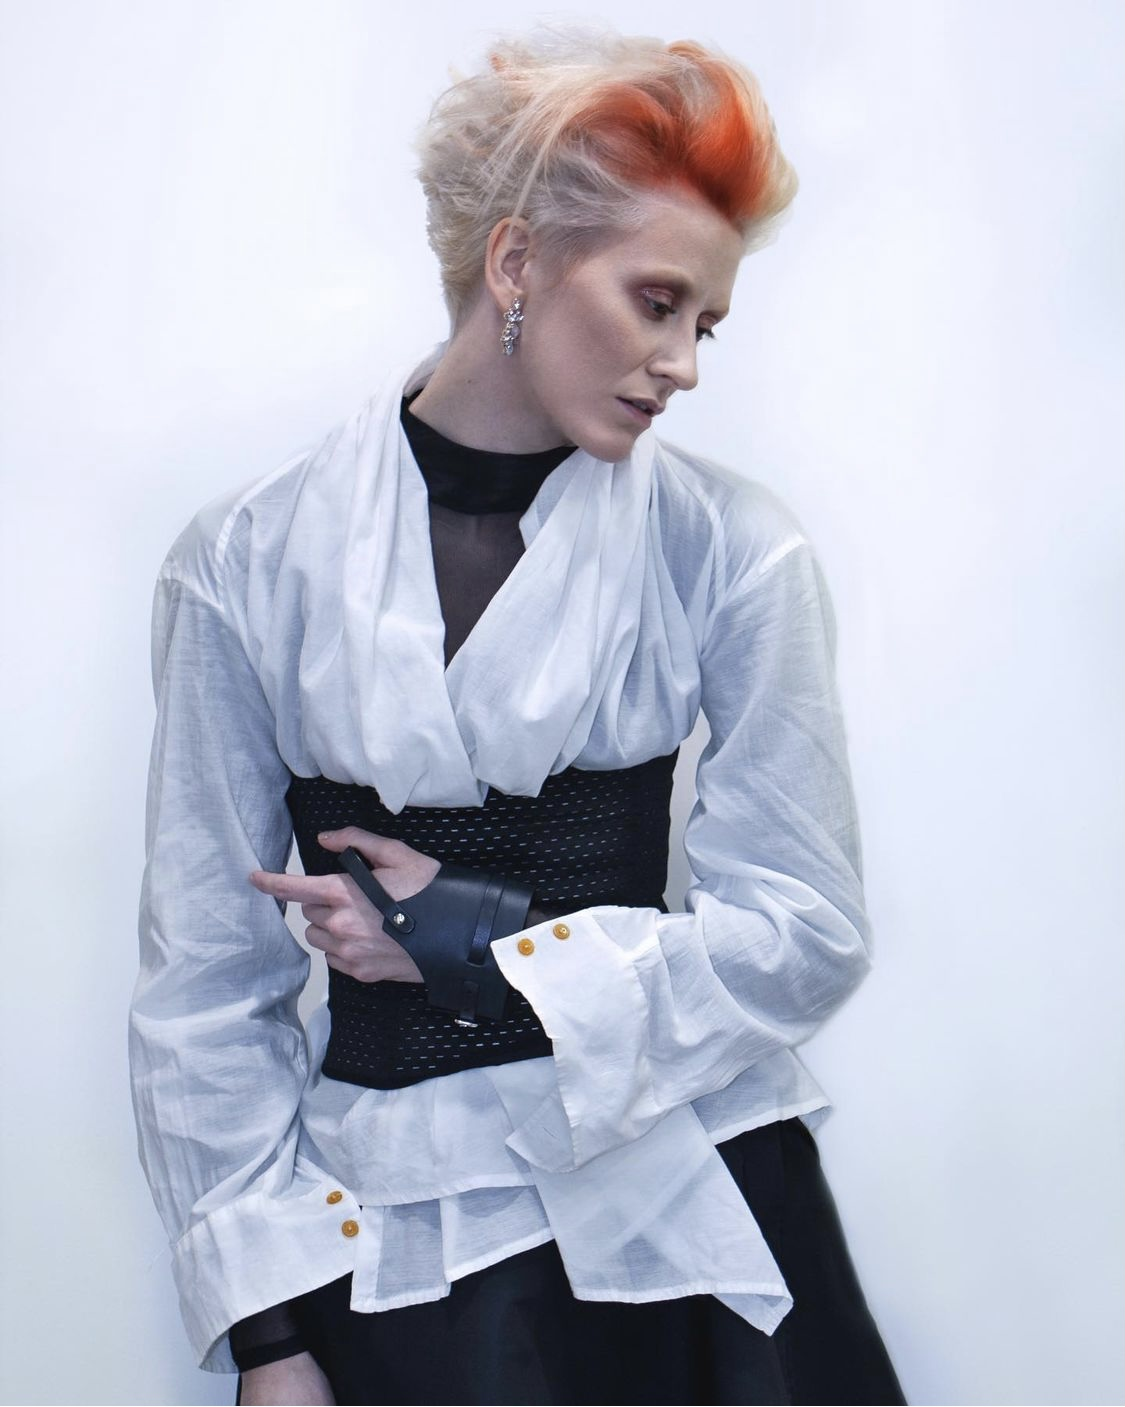 Jayson Gray colour work for Wella Professionals WE Create